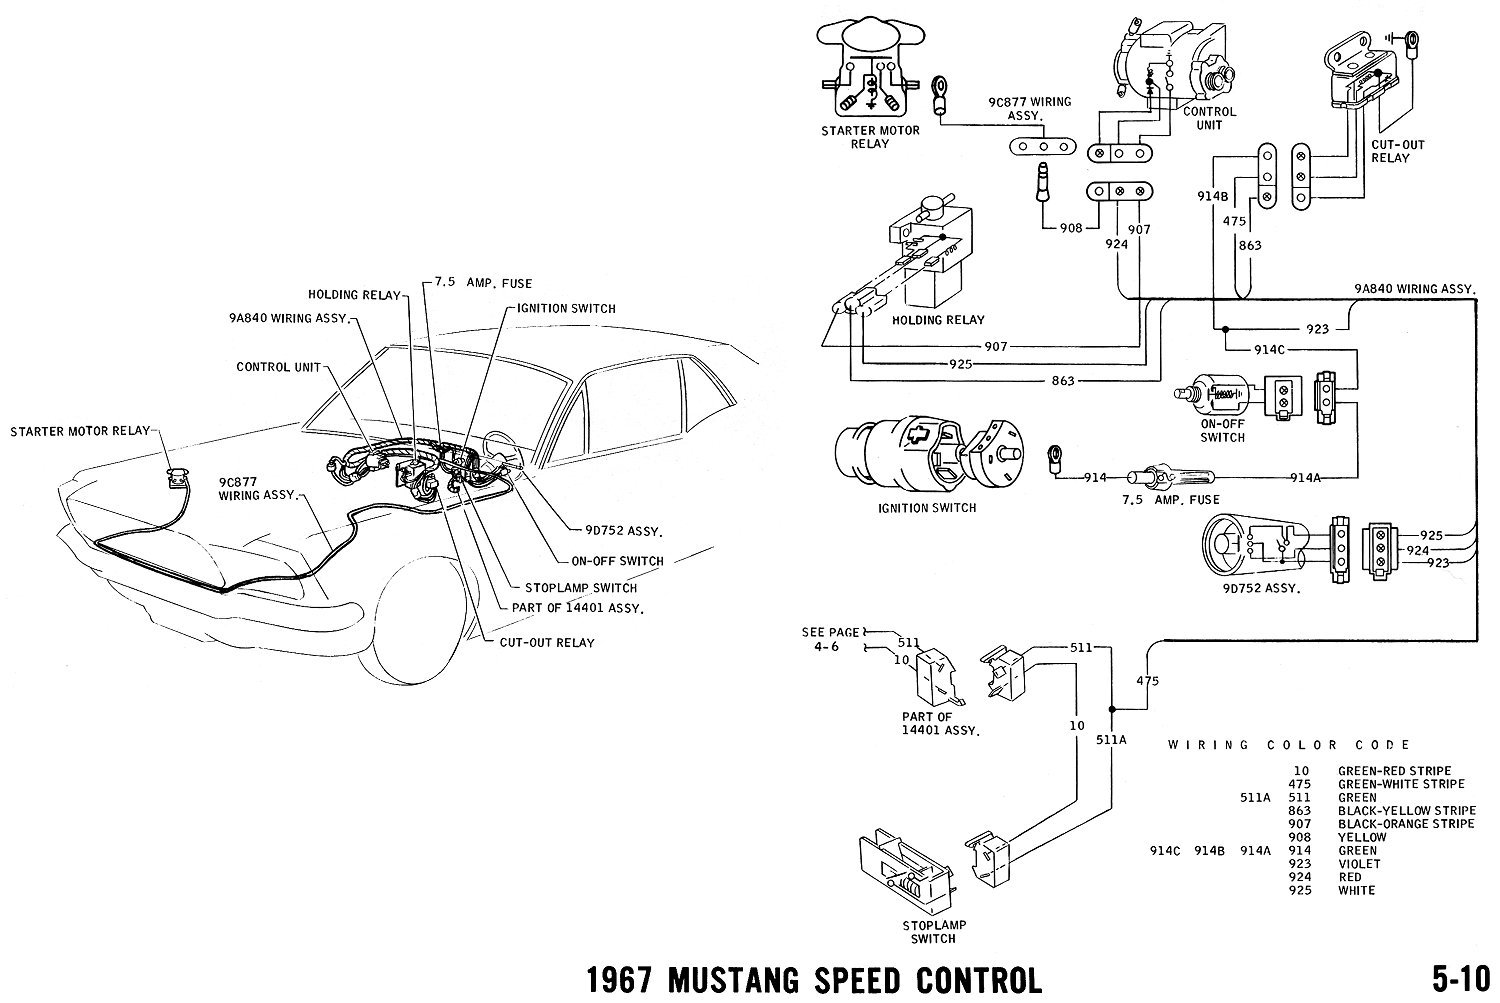 69 Camaro Horn Relay Wiring likewise 1964k In 1966 Mustang Wiring Diagram additionally 1967 Mustang Wiring And Vacuum Diagrams in addition Ford Torino Tail Light Wiring Diagram moreover Viewtopic. on 69 mustang fuse relay box